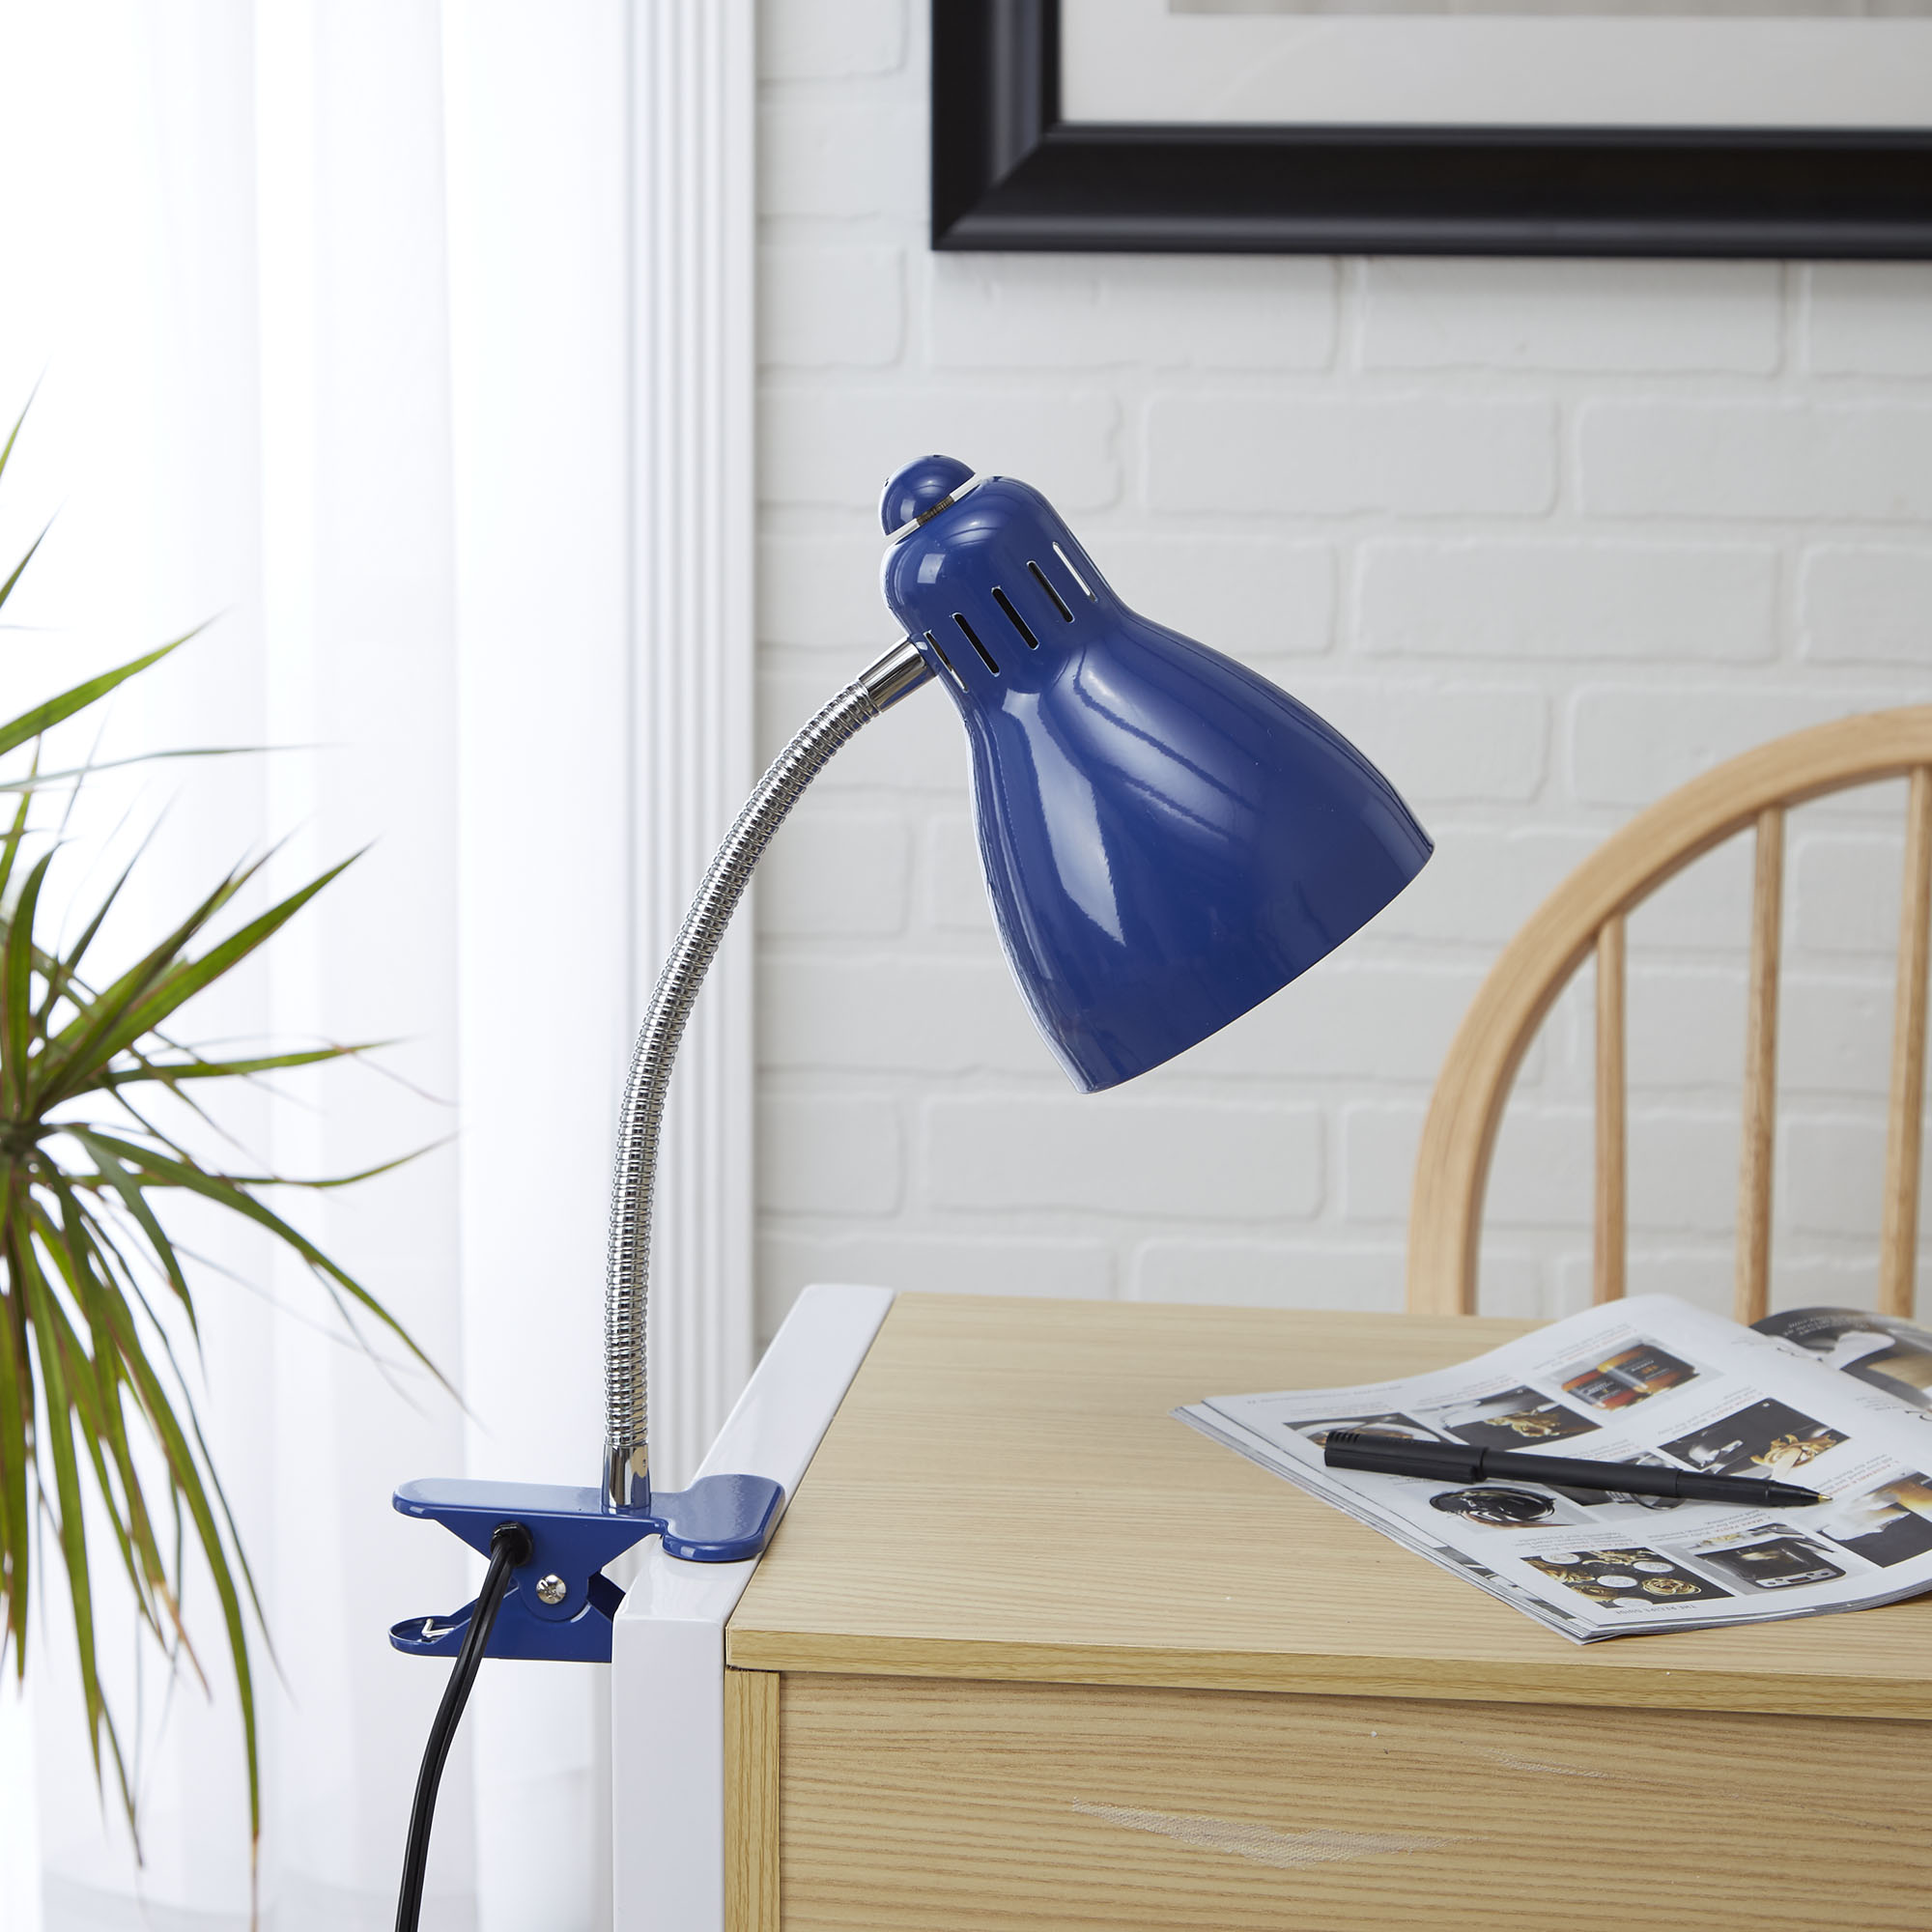 Mainstays Gooseneck Clip Lamp, CFL bulb included, Black